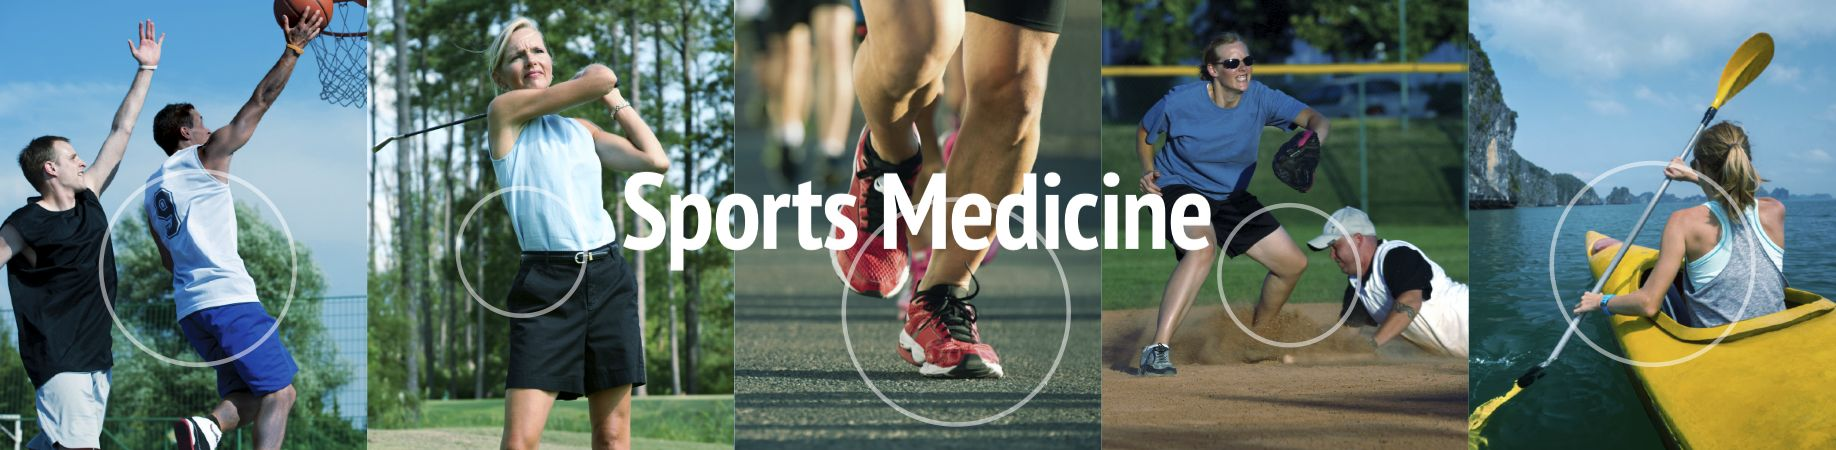 Our experienced Sports Medicine team will work together with you to get you safely back in the game. Contact Orthopaedic Associates of Muskegon today!